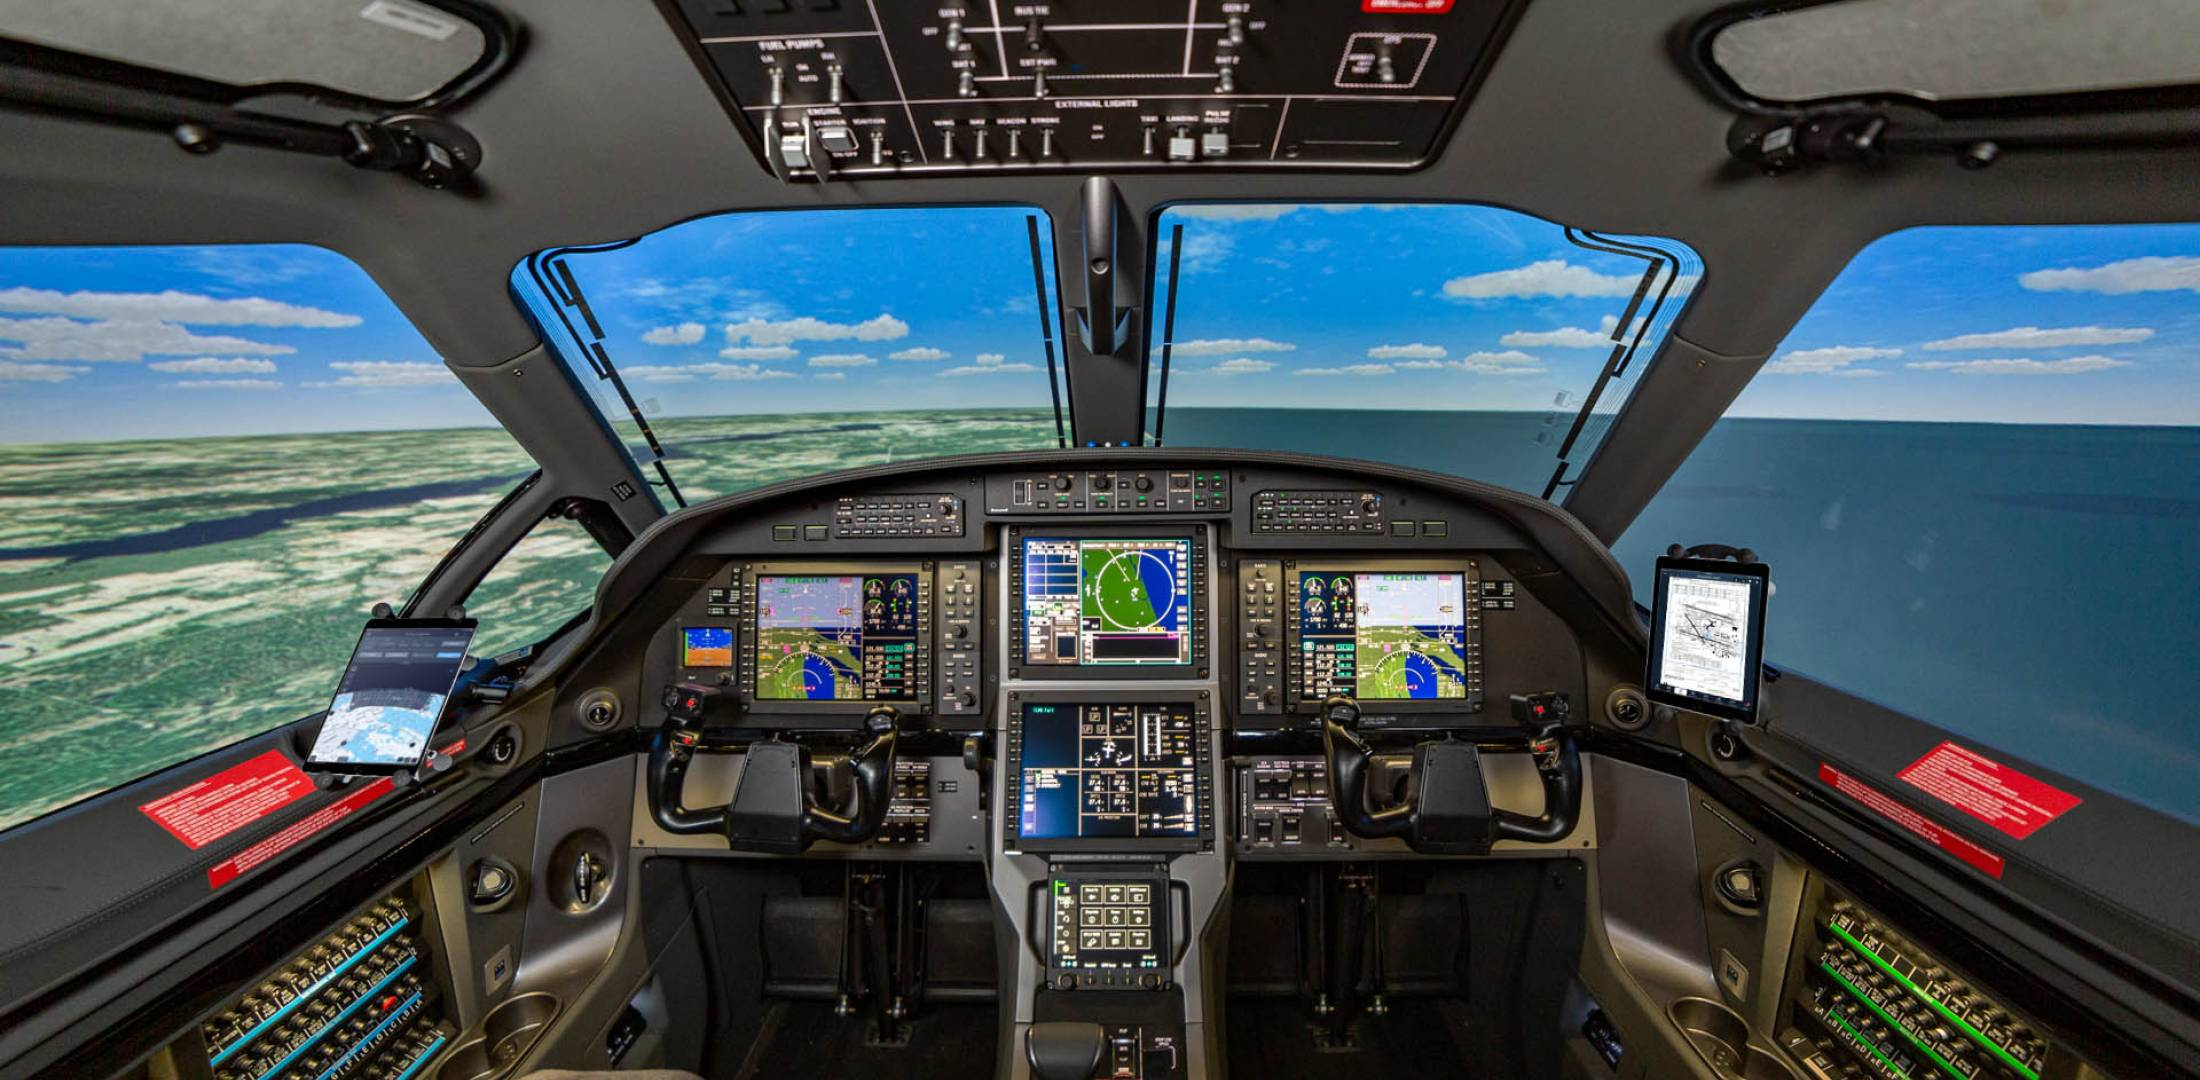 PC-12 NGX flight training device